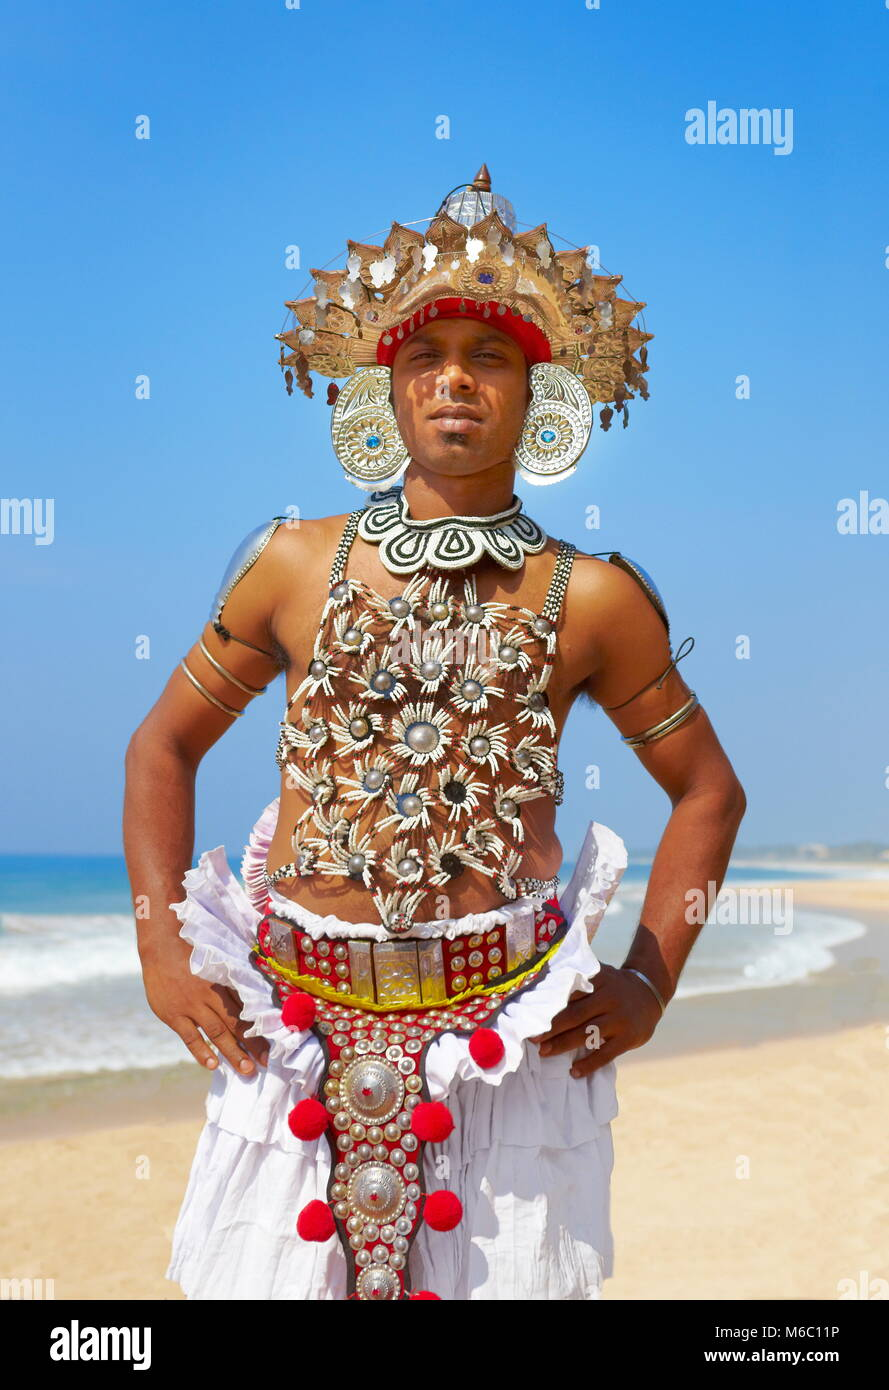 Local dancer dressed in traditional costume, Sri Lanka - Stock Image